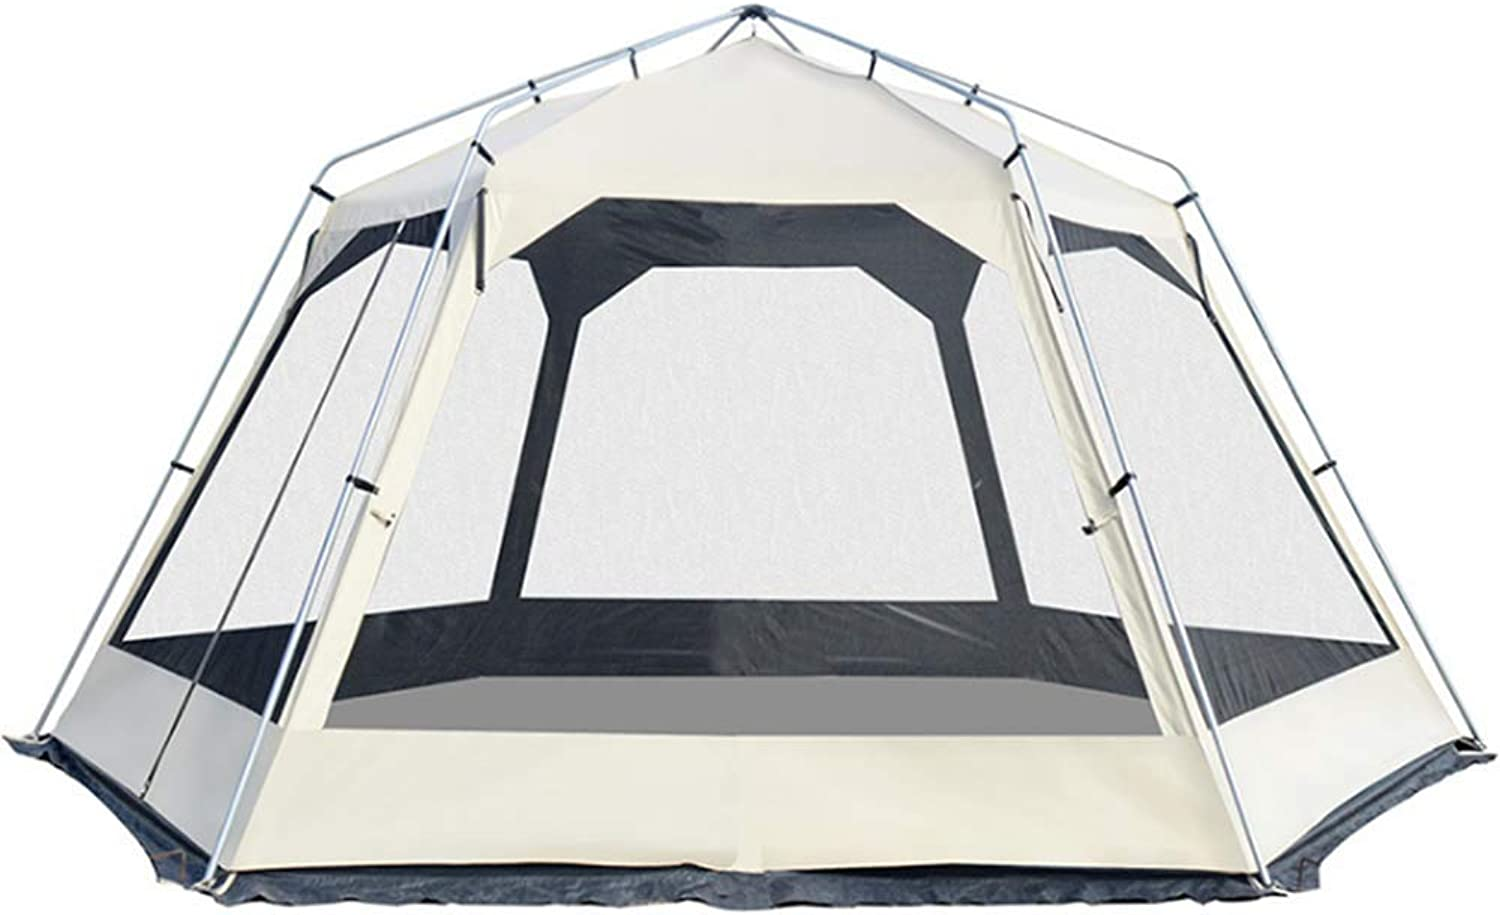 Group Party Tent with Sun Canopy Triple Ventilation Festival Backpacking Trekking Outdoor Dome Tent 810 Persons Windproof Snow Shelter